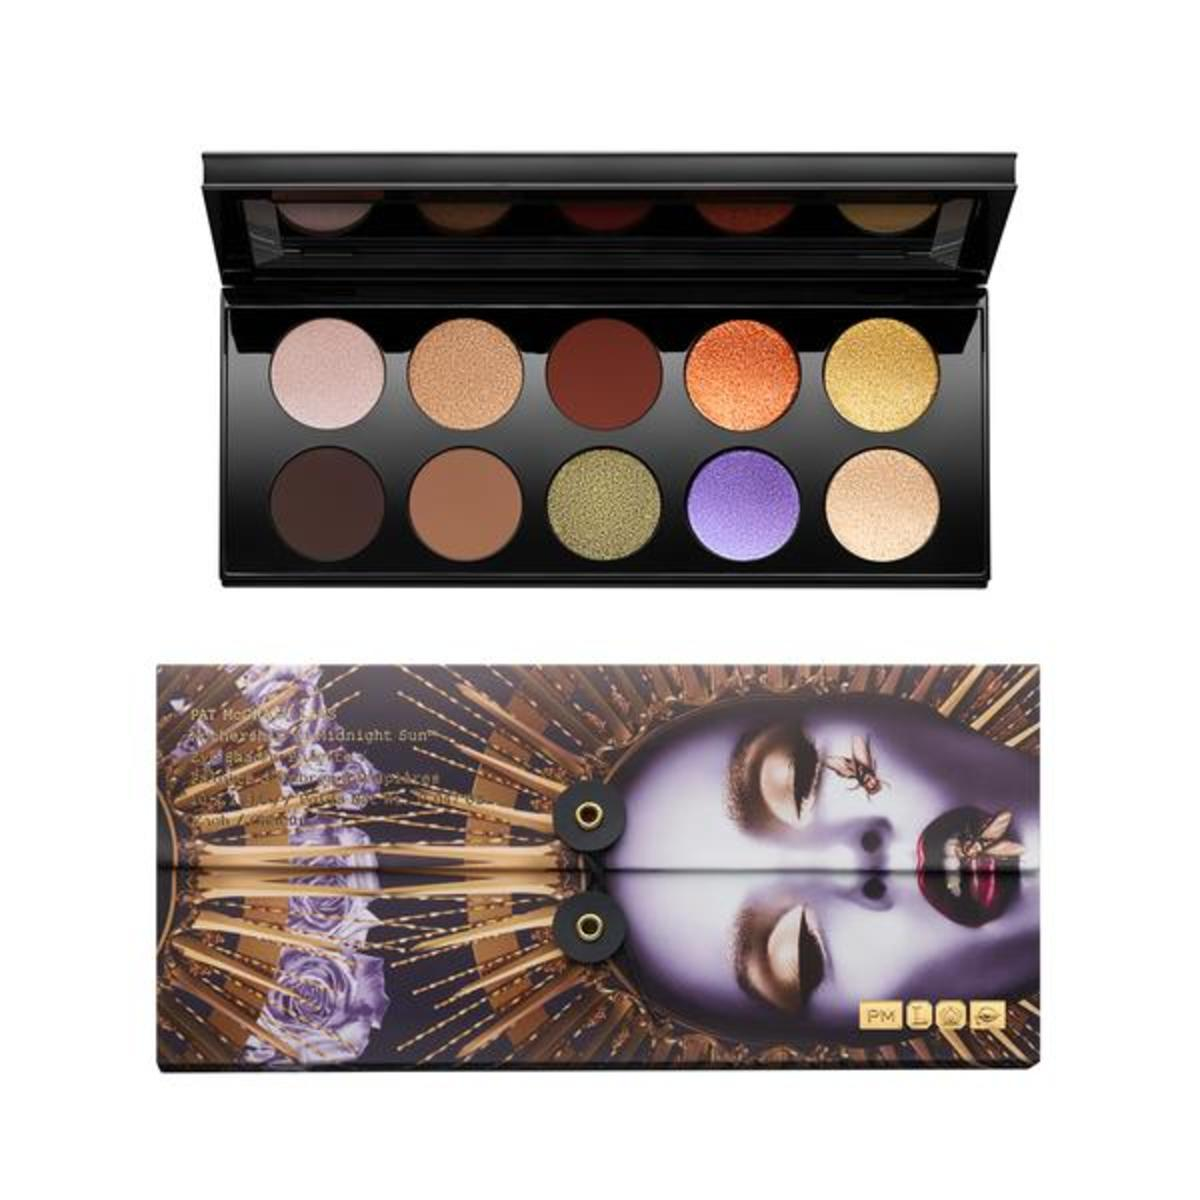 pat-mcgrath-labs-mothership-vi-midnight-sun-palette